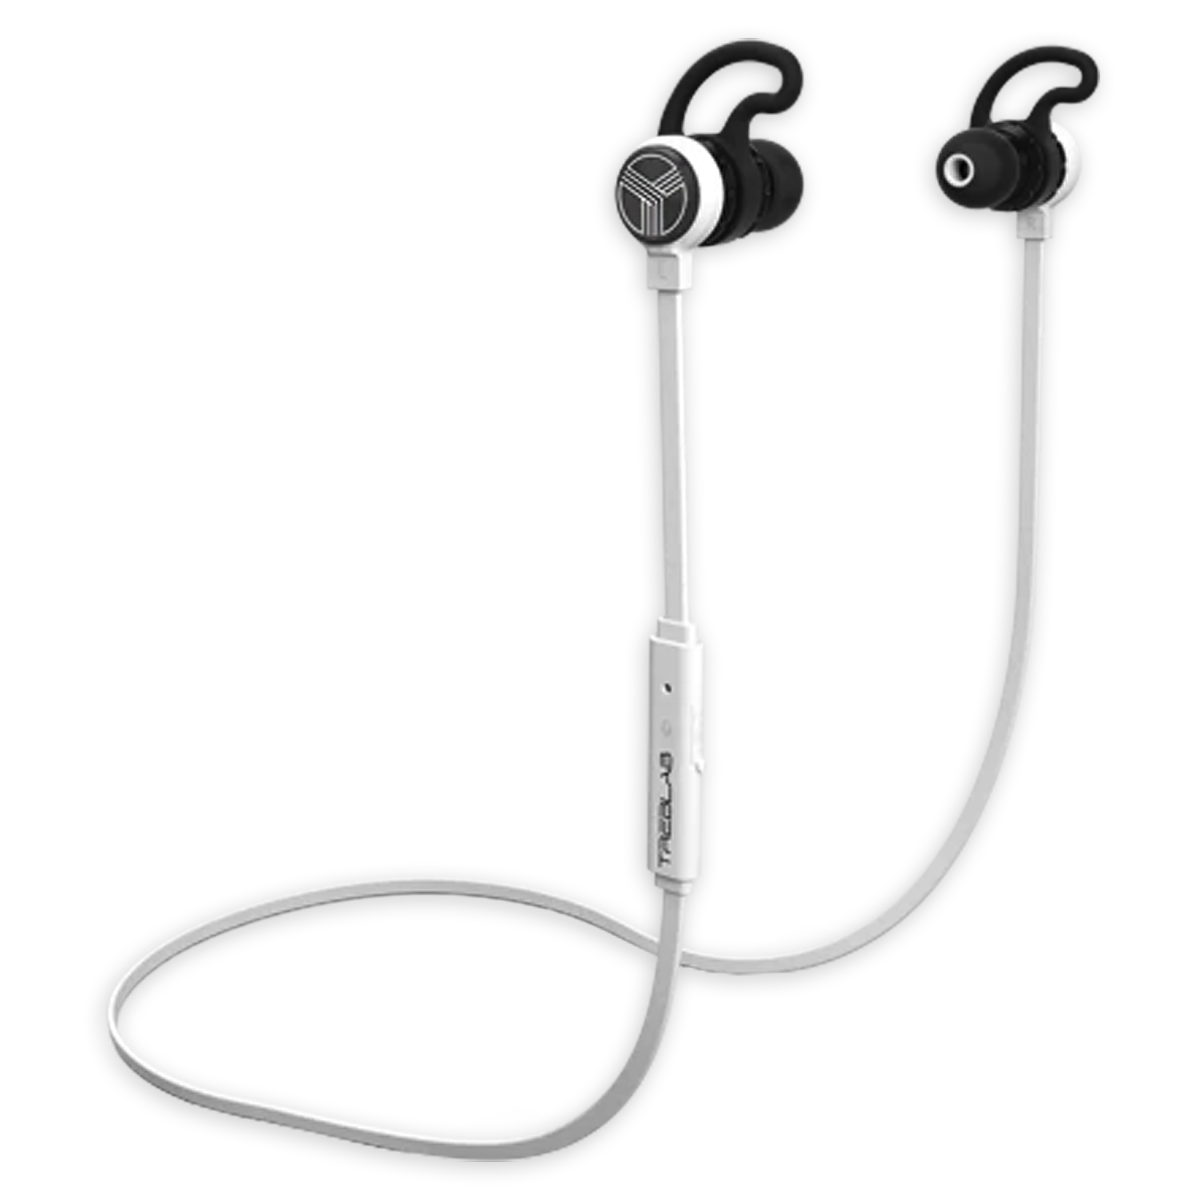 TREBLAB J1 - Best Affordable Sports Earbuds with Ear Hooks